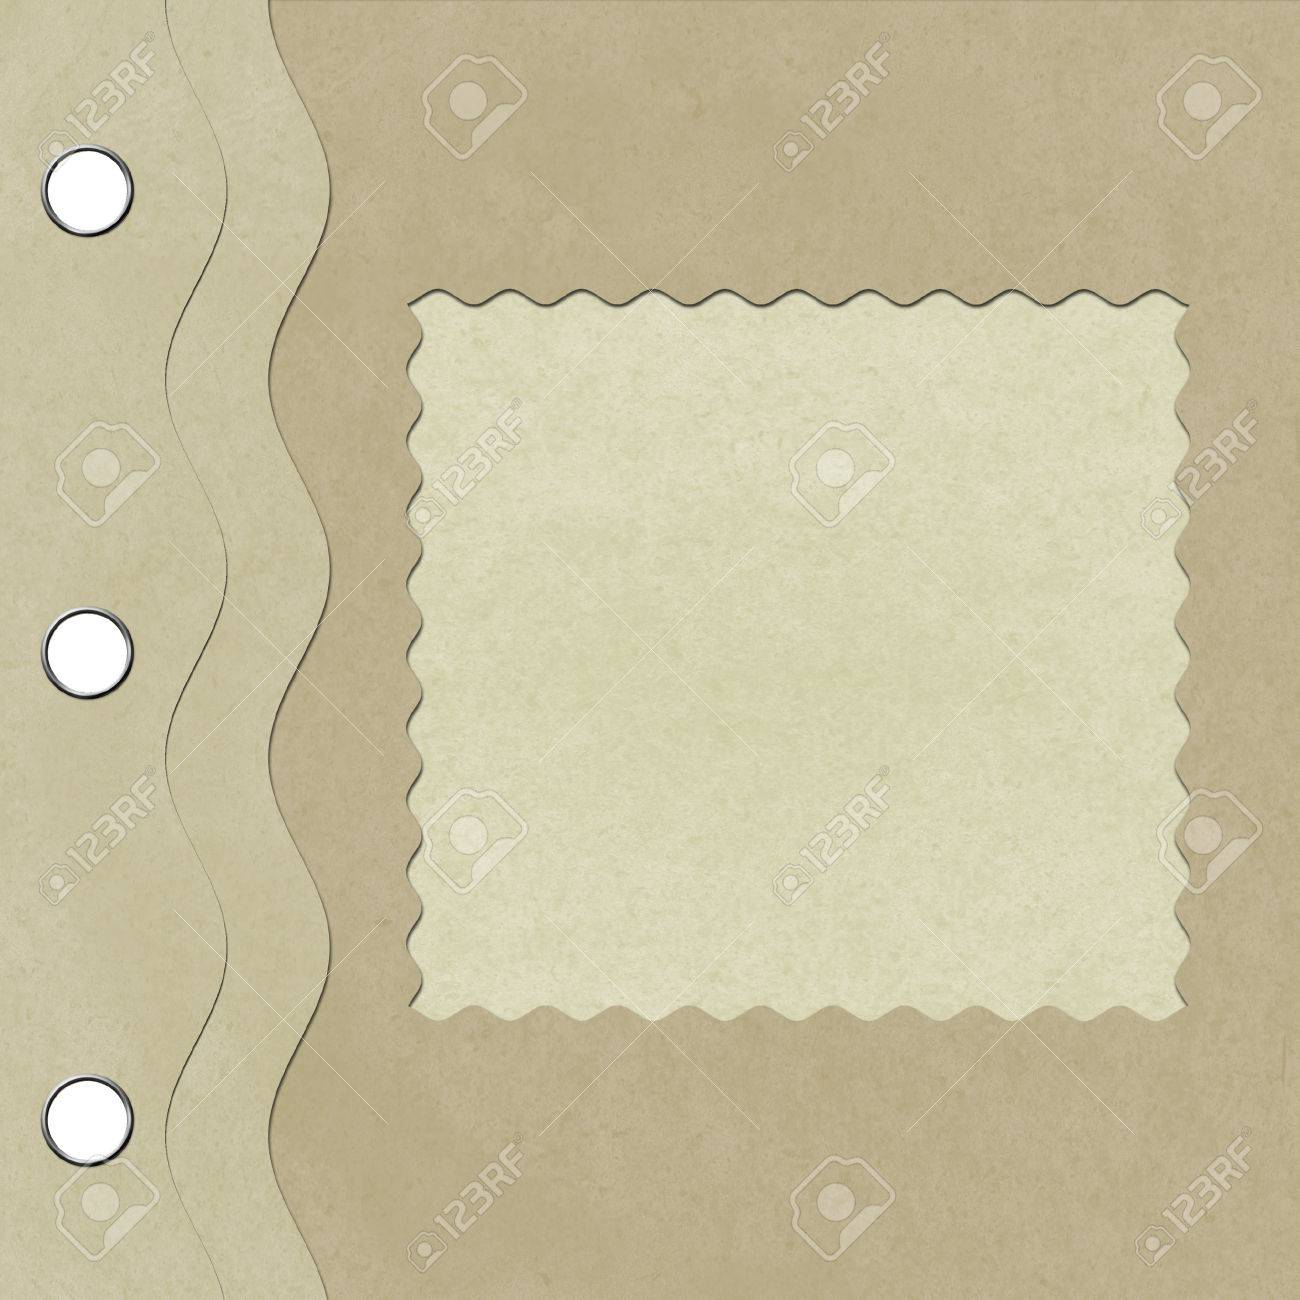 Square Cardboard Frame With Wavy Cutouts For Scrapbooking Stock ...